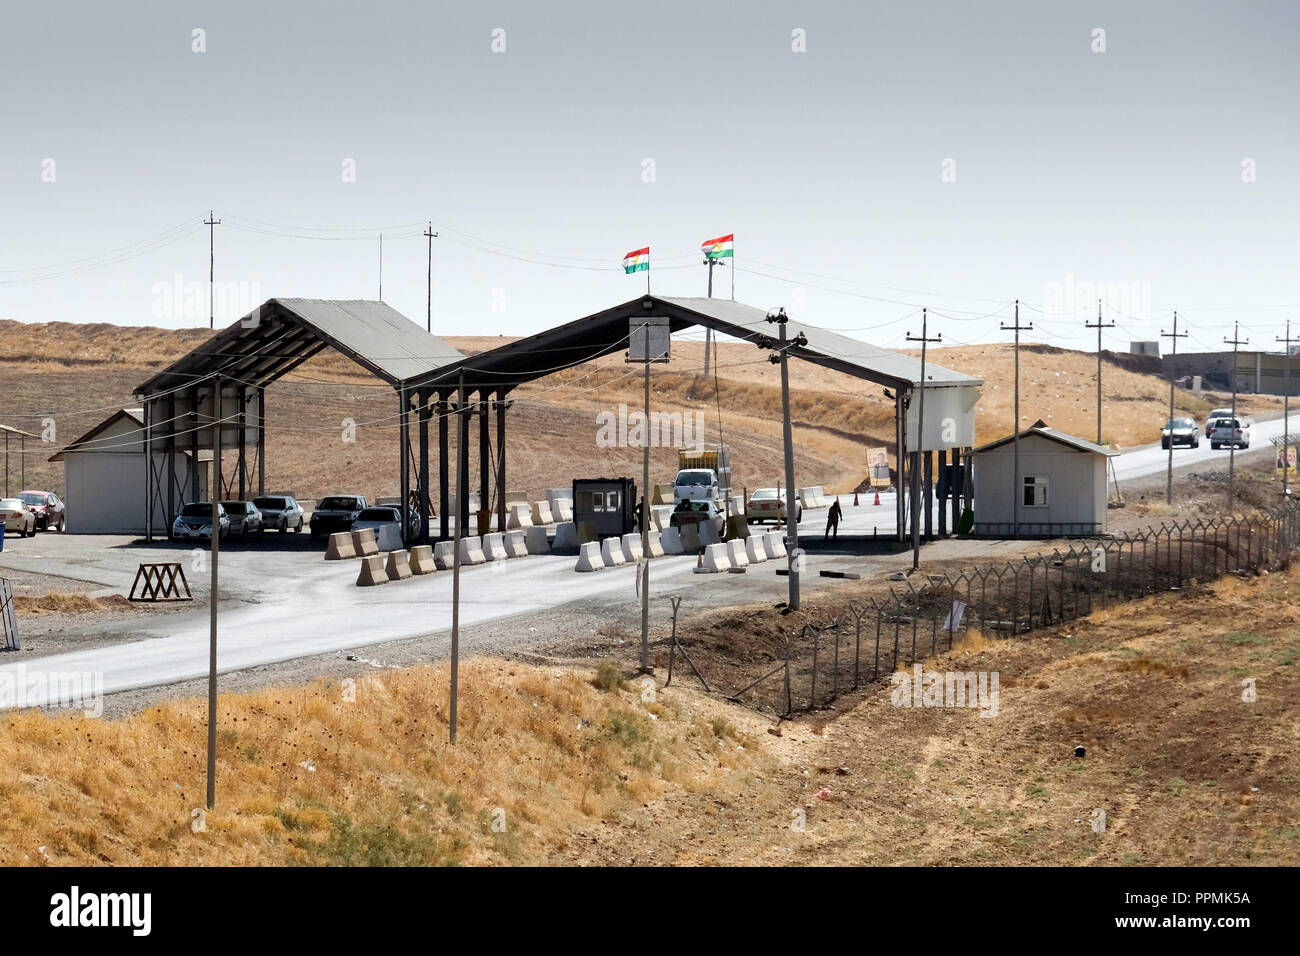 Kurdish check-point near Erbil, Kurdistan, Northern Iraq - Kurdischer Check-Point bei Erbil, Kurdistan, Nord-Irak - Stock Image